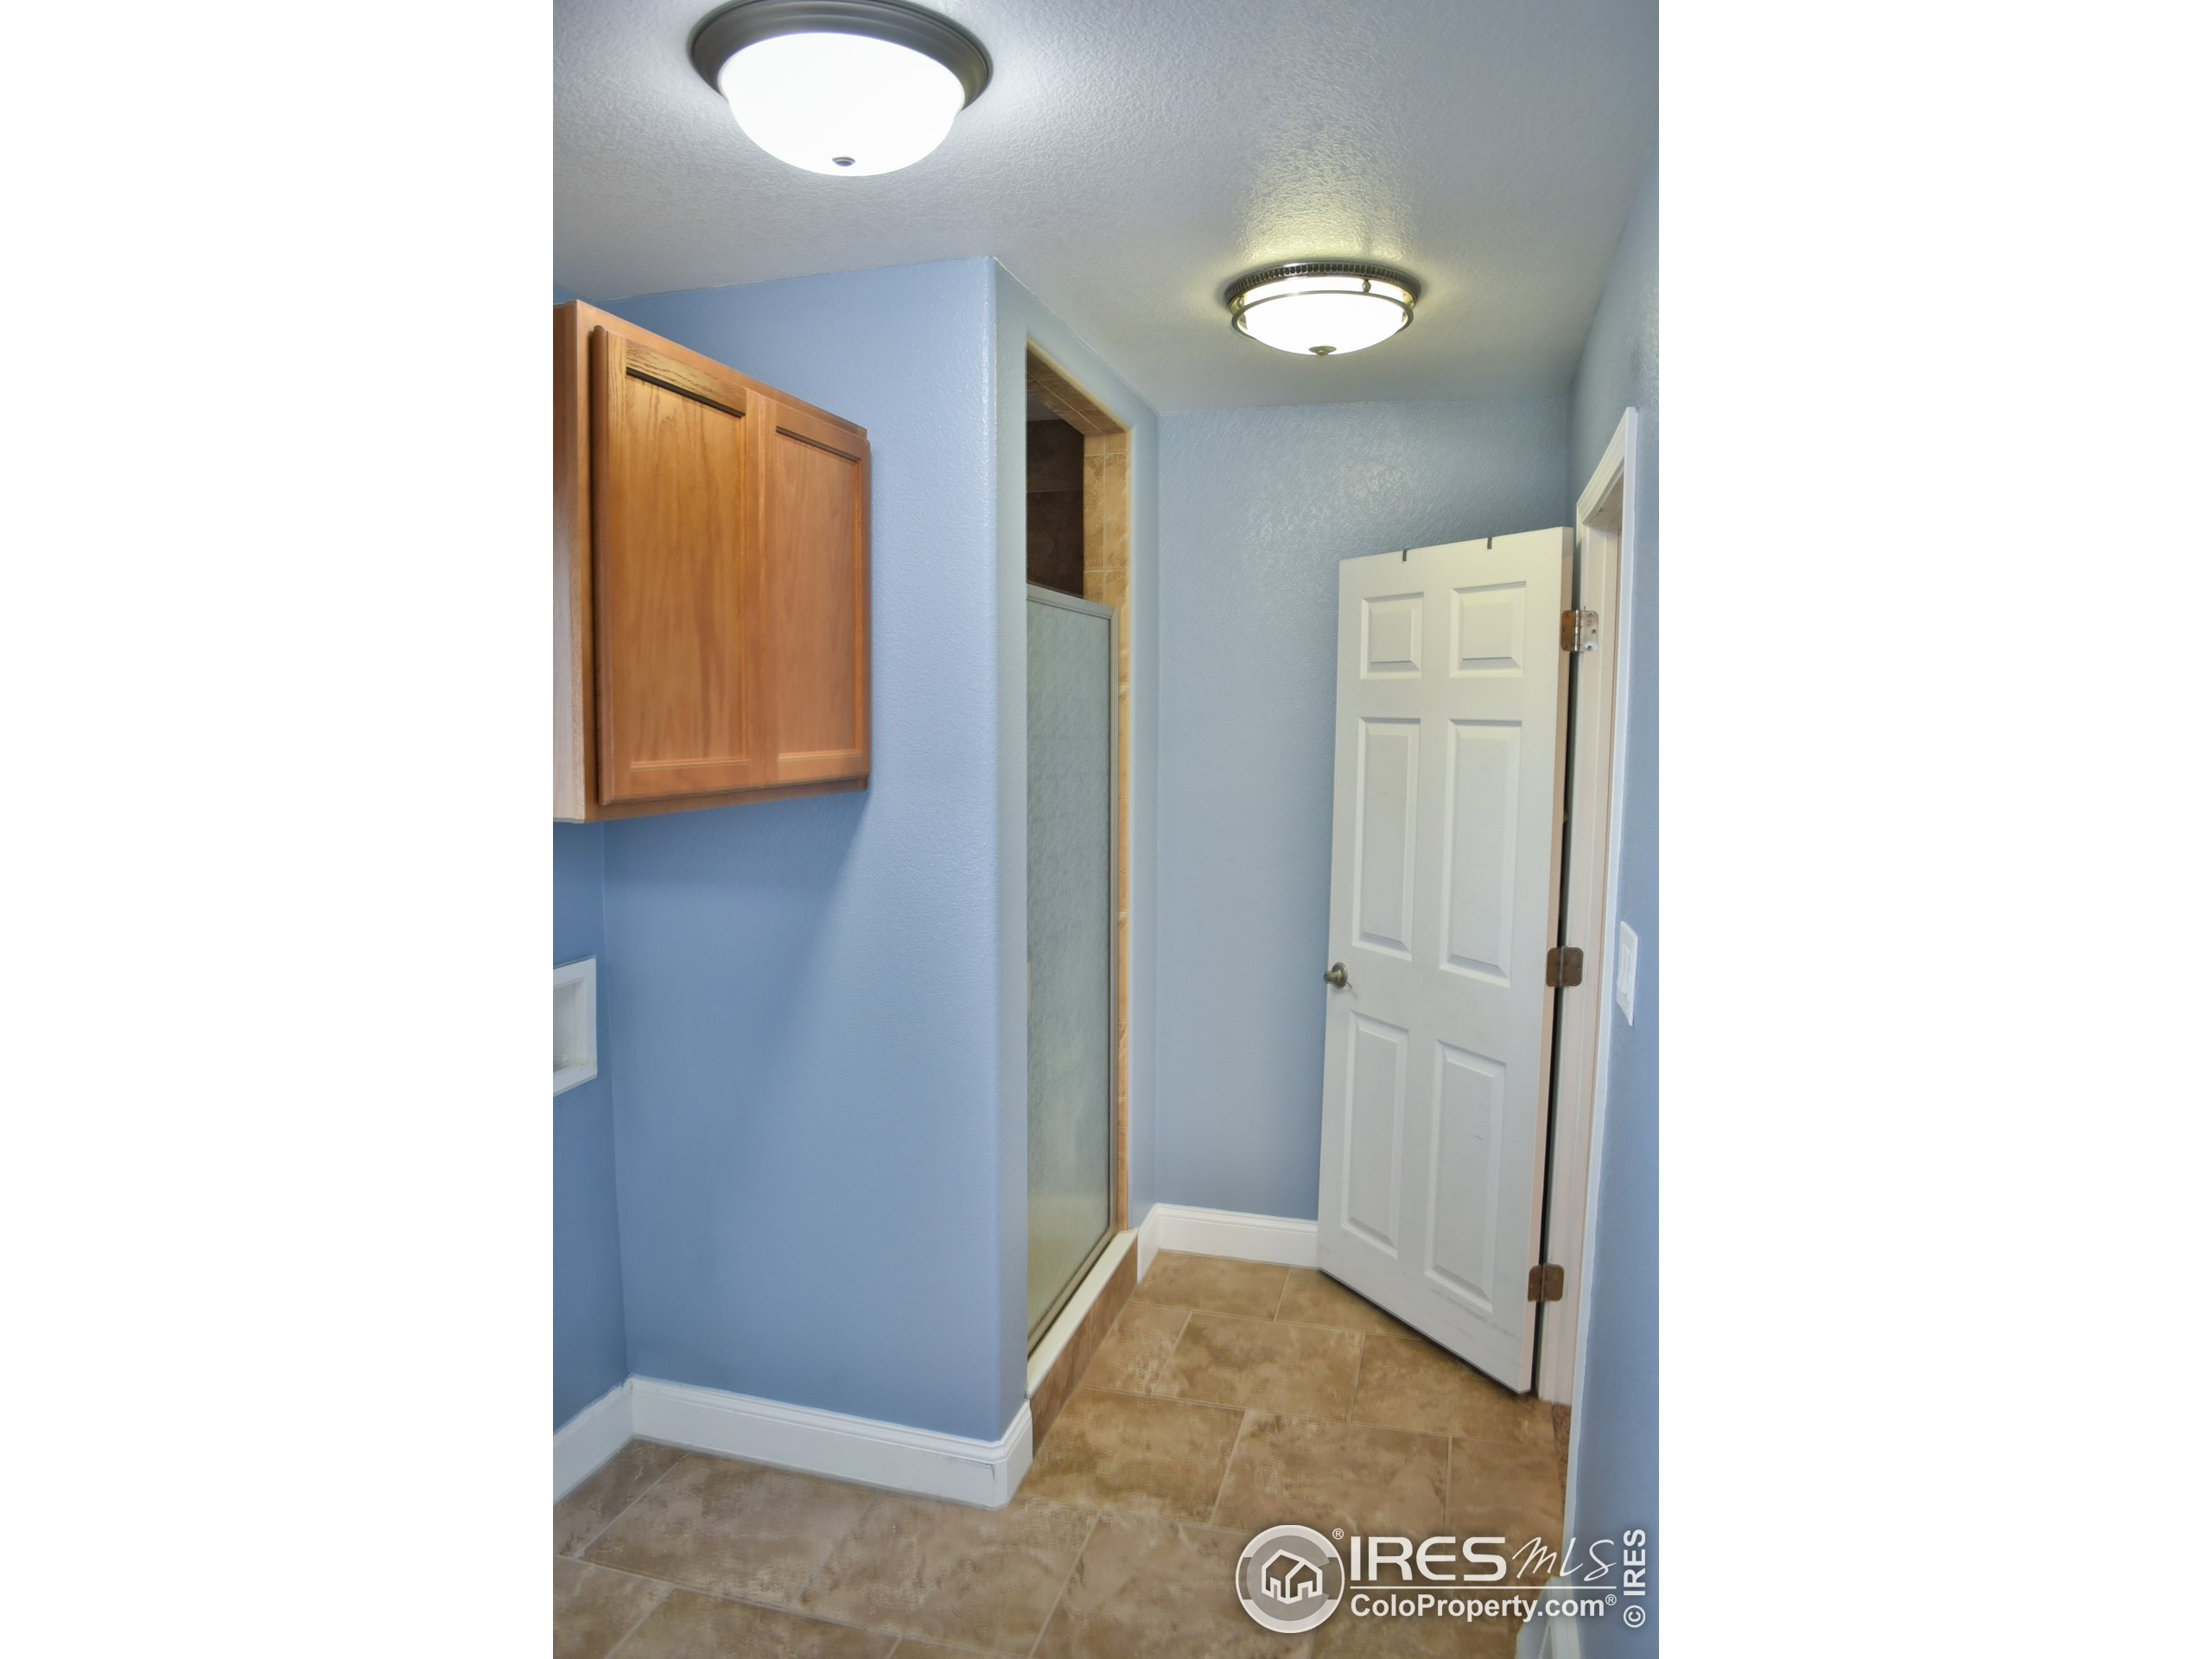 Hallway with view to Master Bedroom all the way at the end.